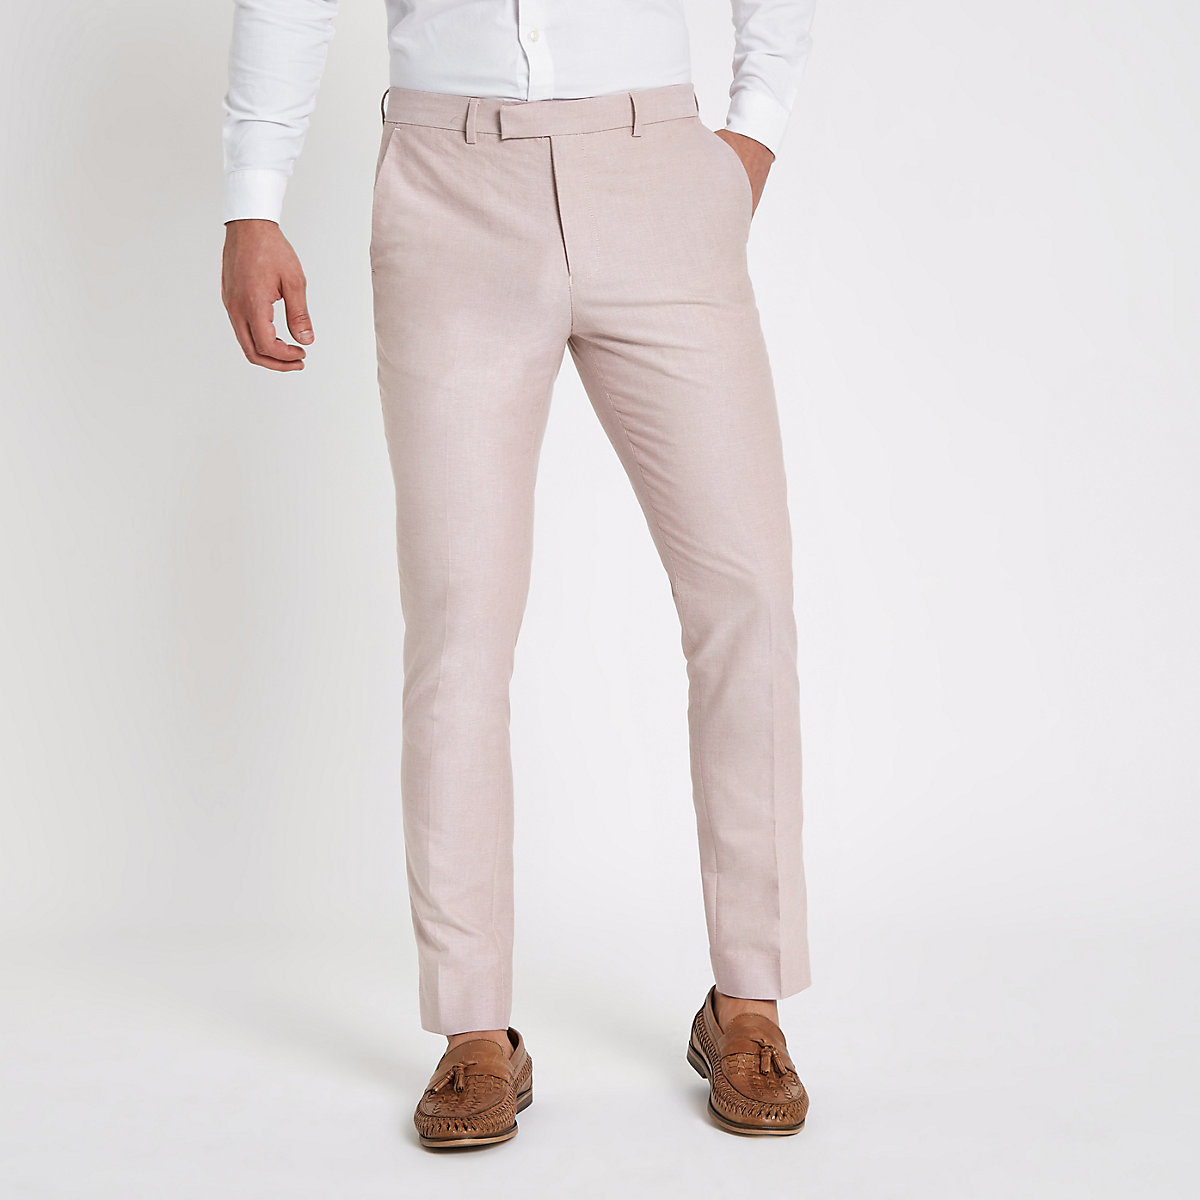 Pink skinny fit smart trousers